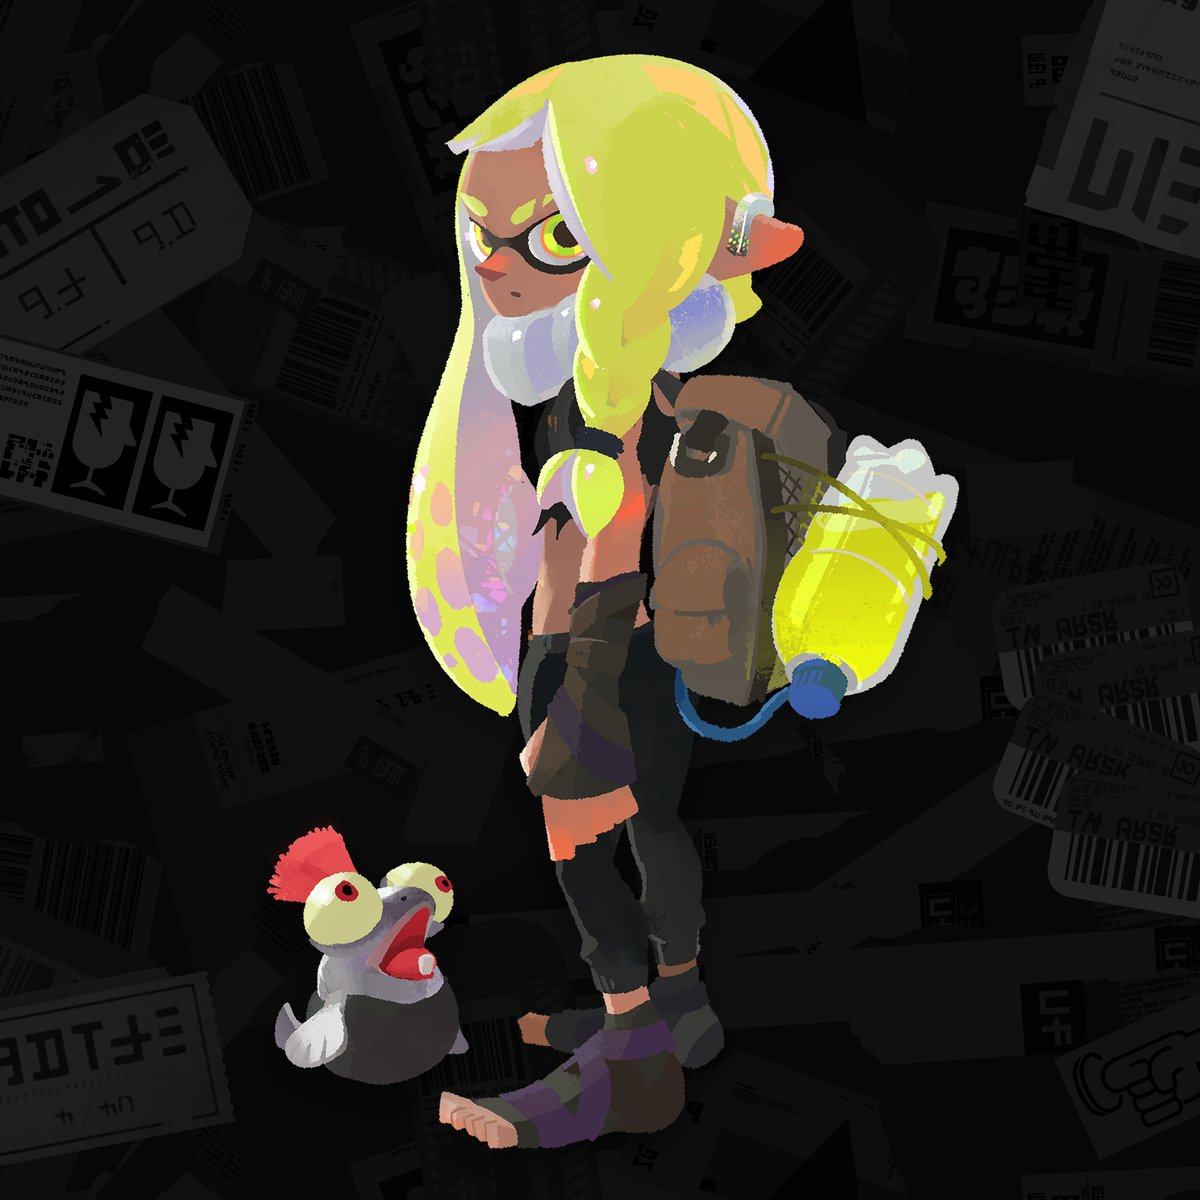 This Splatsville youth and trusty little Smallfry buddy are scrap hunters who search for junk gems by day and splat it up in Turf Wars on the side. It seems this Inkling met the New Squidbeak Splatoon and is now their new Agent 3 in the continued fight against the evil Octarians! https://t.co/DEWDPNvayL